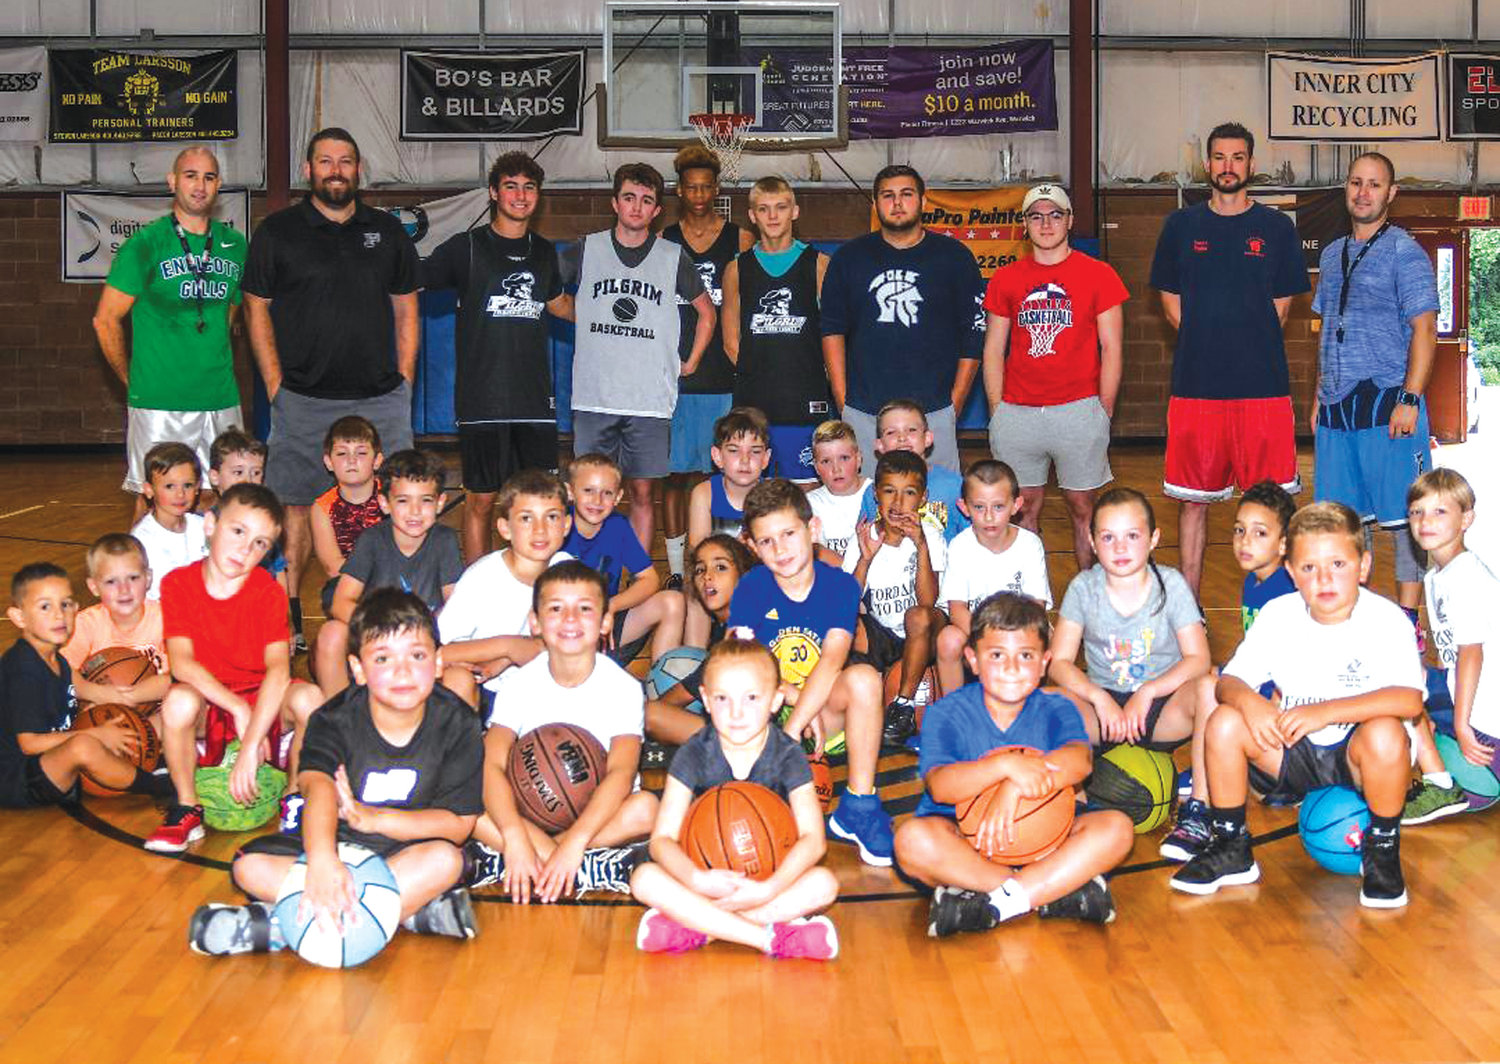 COMMUNITY GATHERING: Locals gather at the Warwick free youth basketball clinic at the Boys and Girls Club on Sunday.